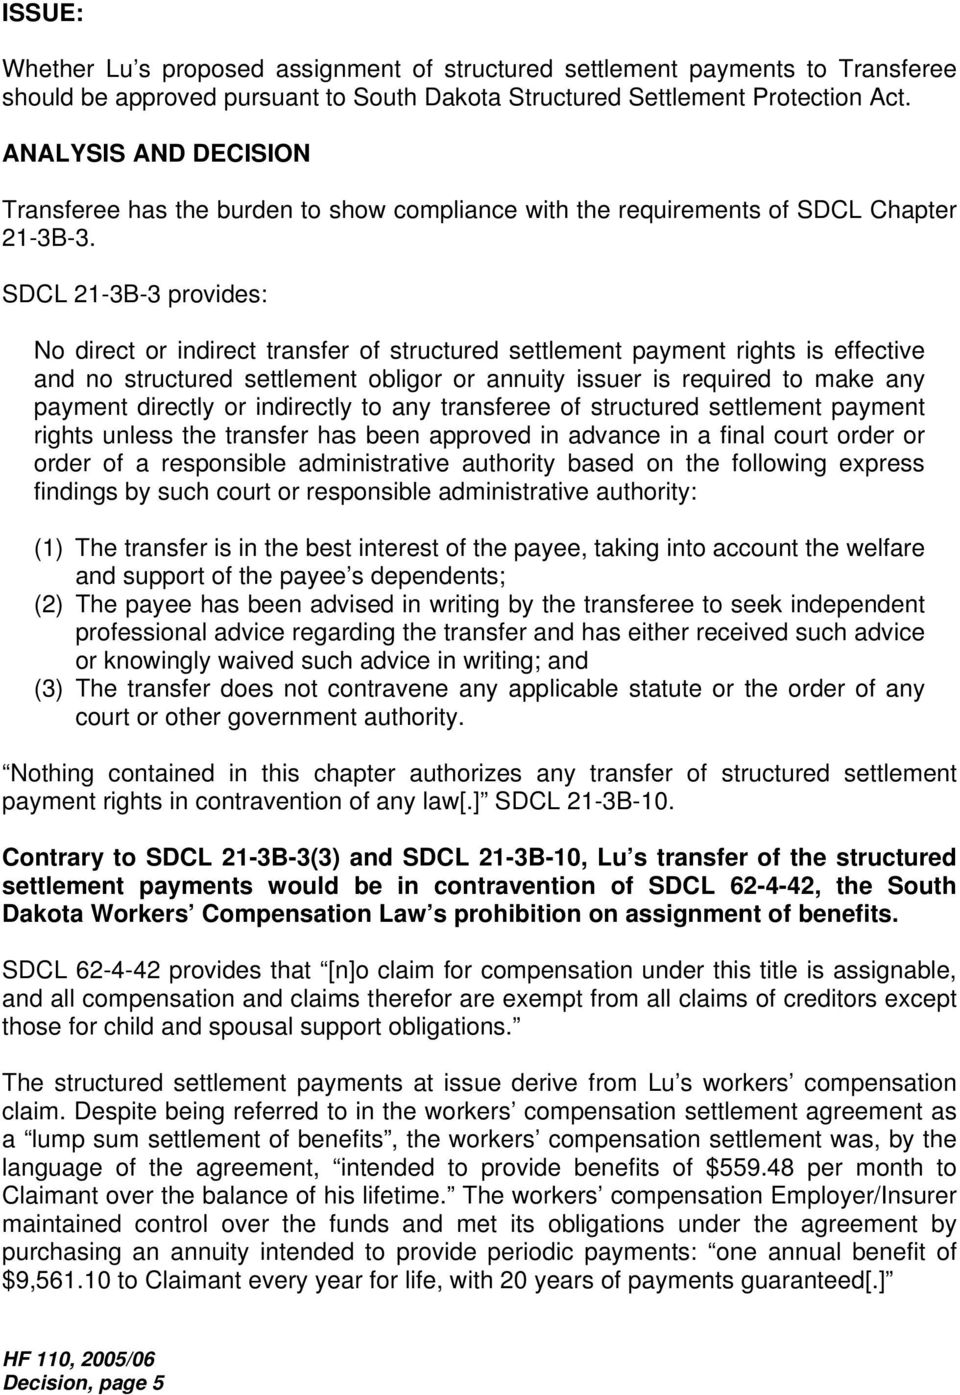 SDCL 21-3B-3 provides: No direct or indirect transfer of structured settlement payment rights is effective and no structured settlement obligor or annuity issuer is required to make any payment